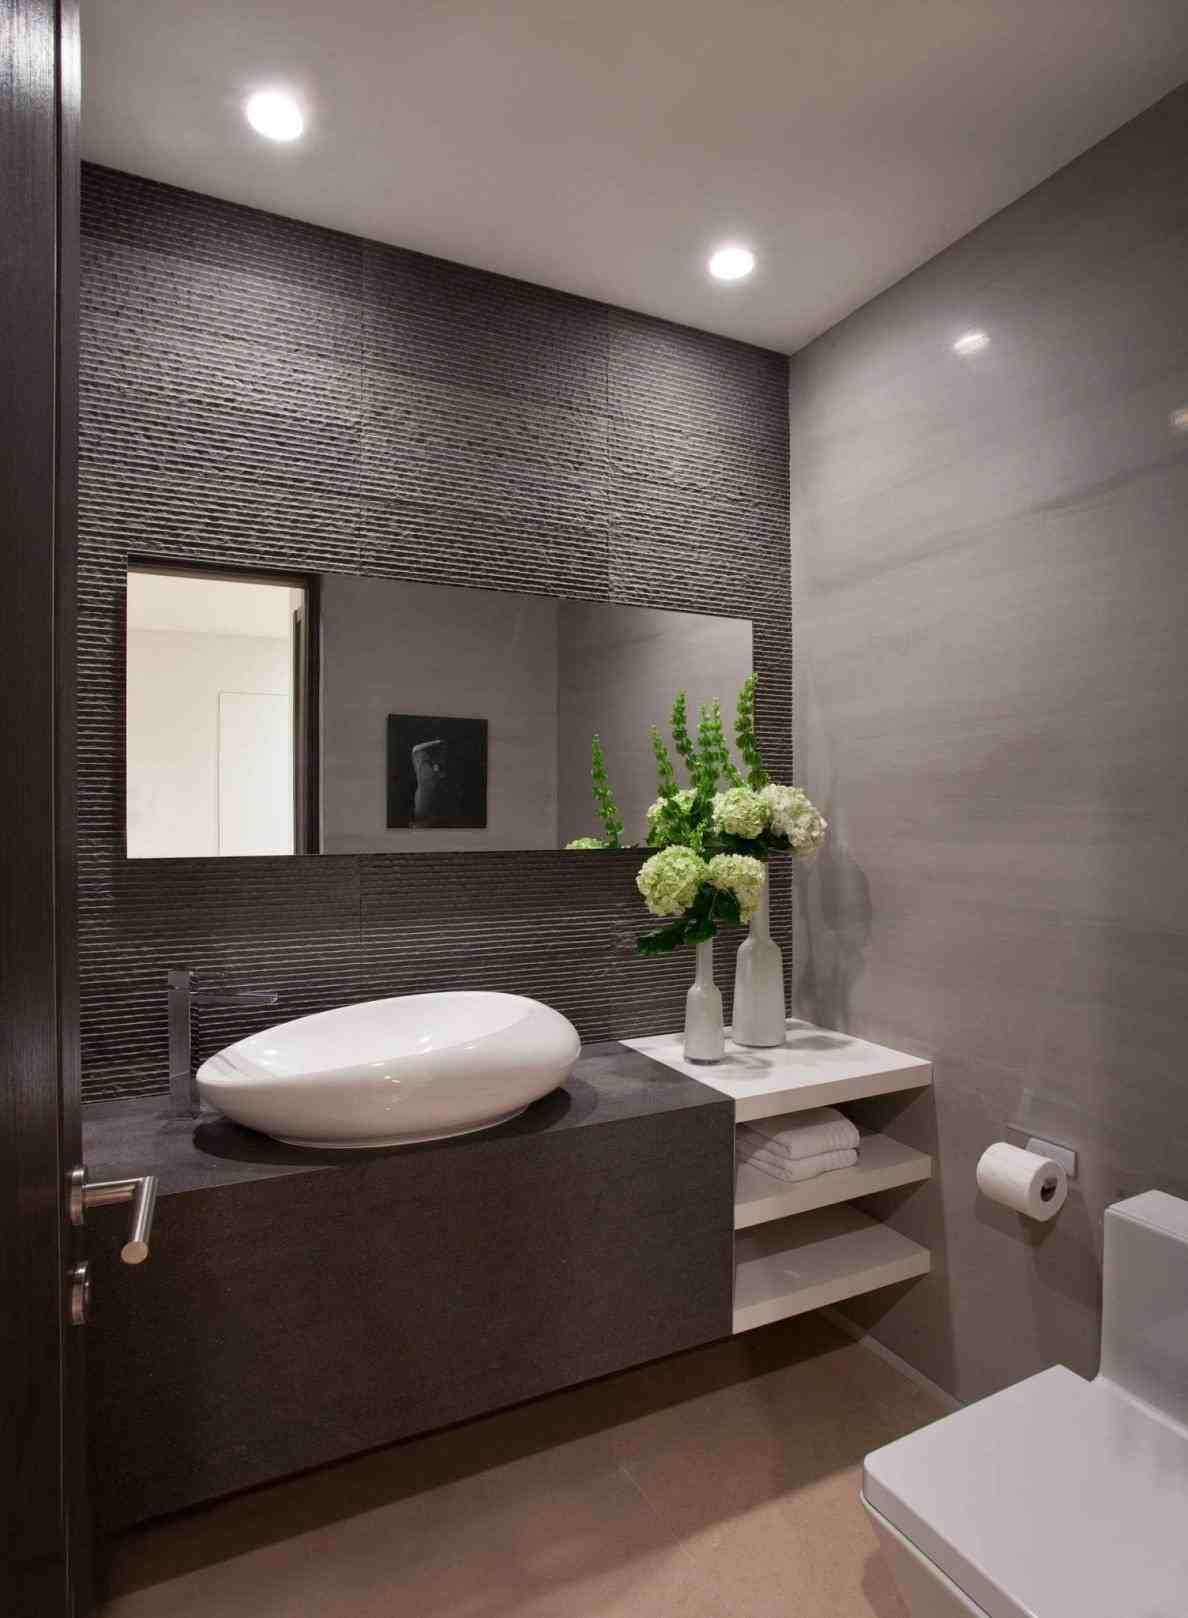 12 Modern Guest Bathroom Ideas Most Amazing And Attractive